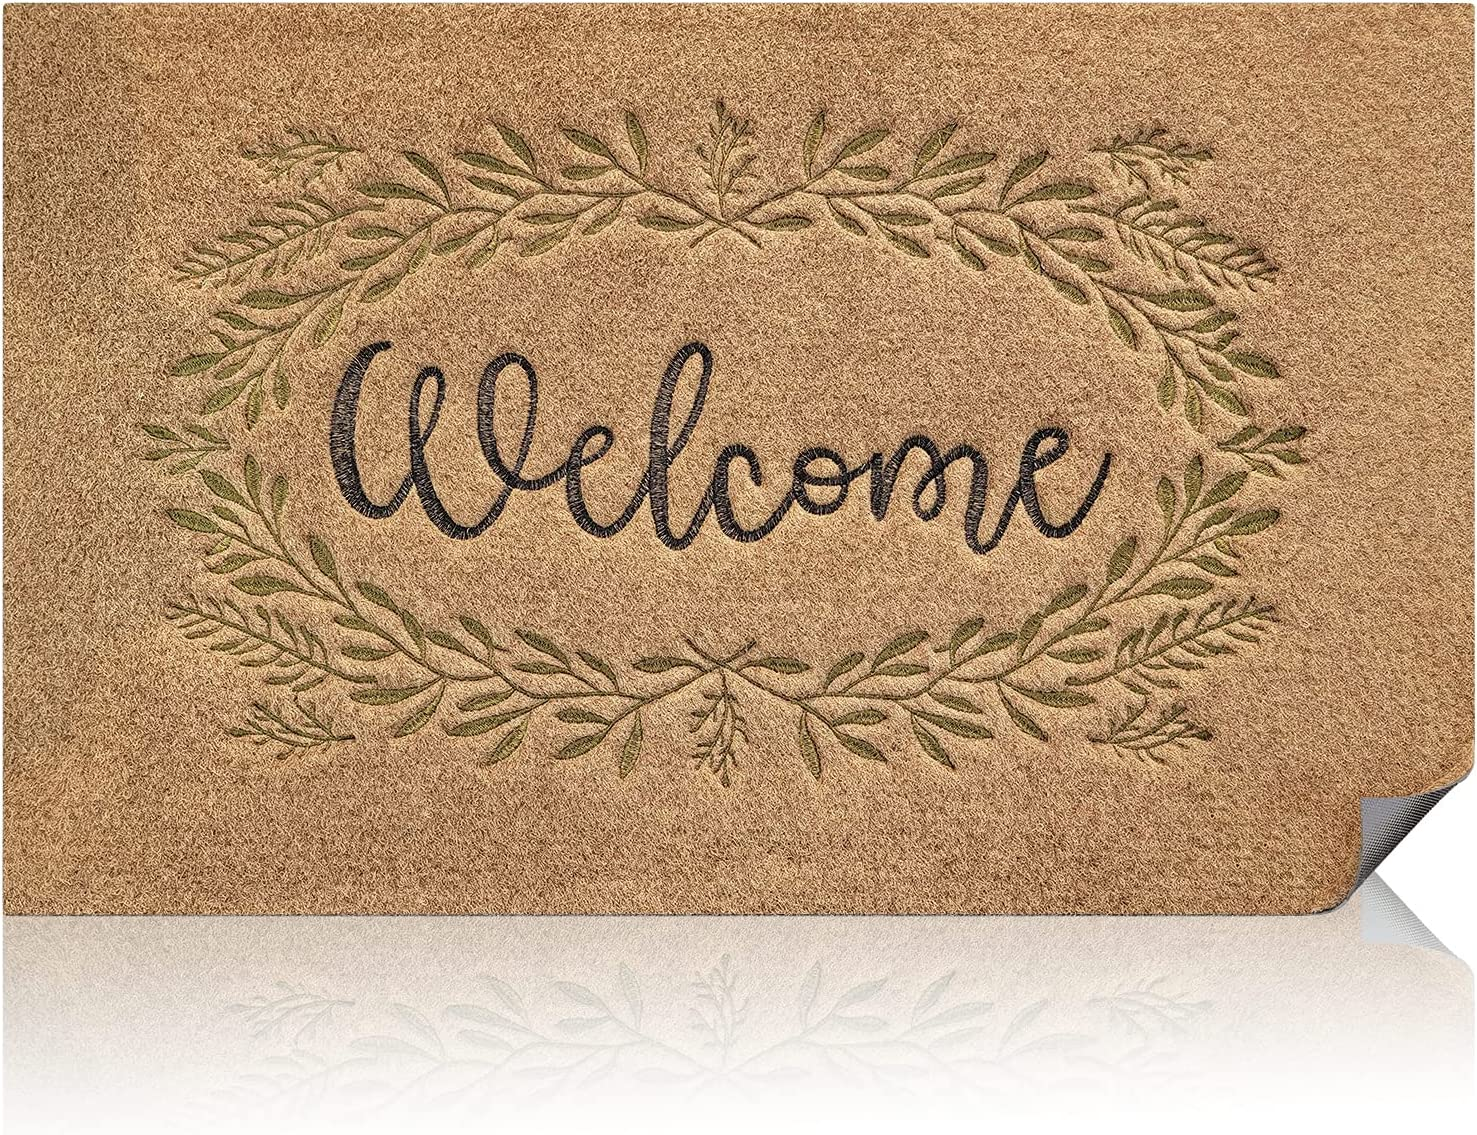 Outdoor Indoor Welcome Mat Front Back Door Outside Entrance Mat Non-Slip Rubber Backing Doormat Heavy Duty Easy Clean Low Profile Mat for Entry Dust Trapper Floor Mat, 18